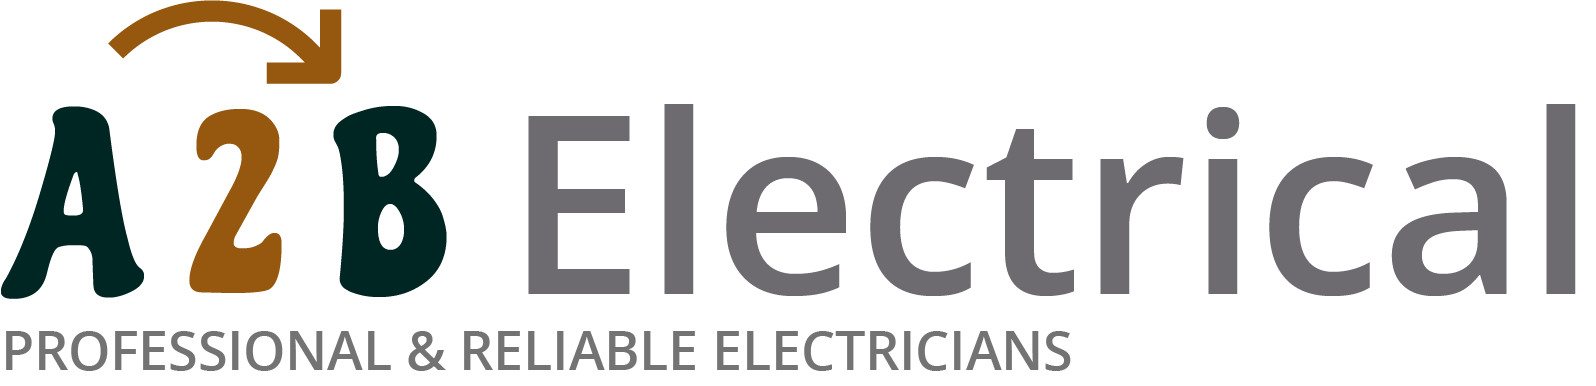 If you have electrical wiring problems in West Hendon, we can provide an electrician to have a look for you.